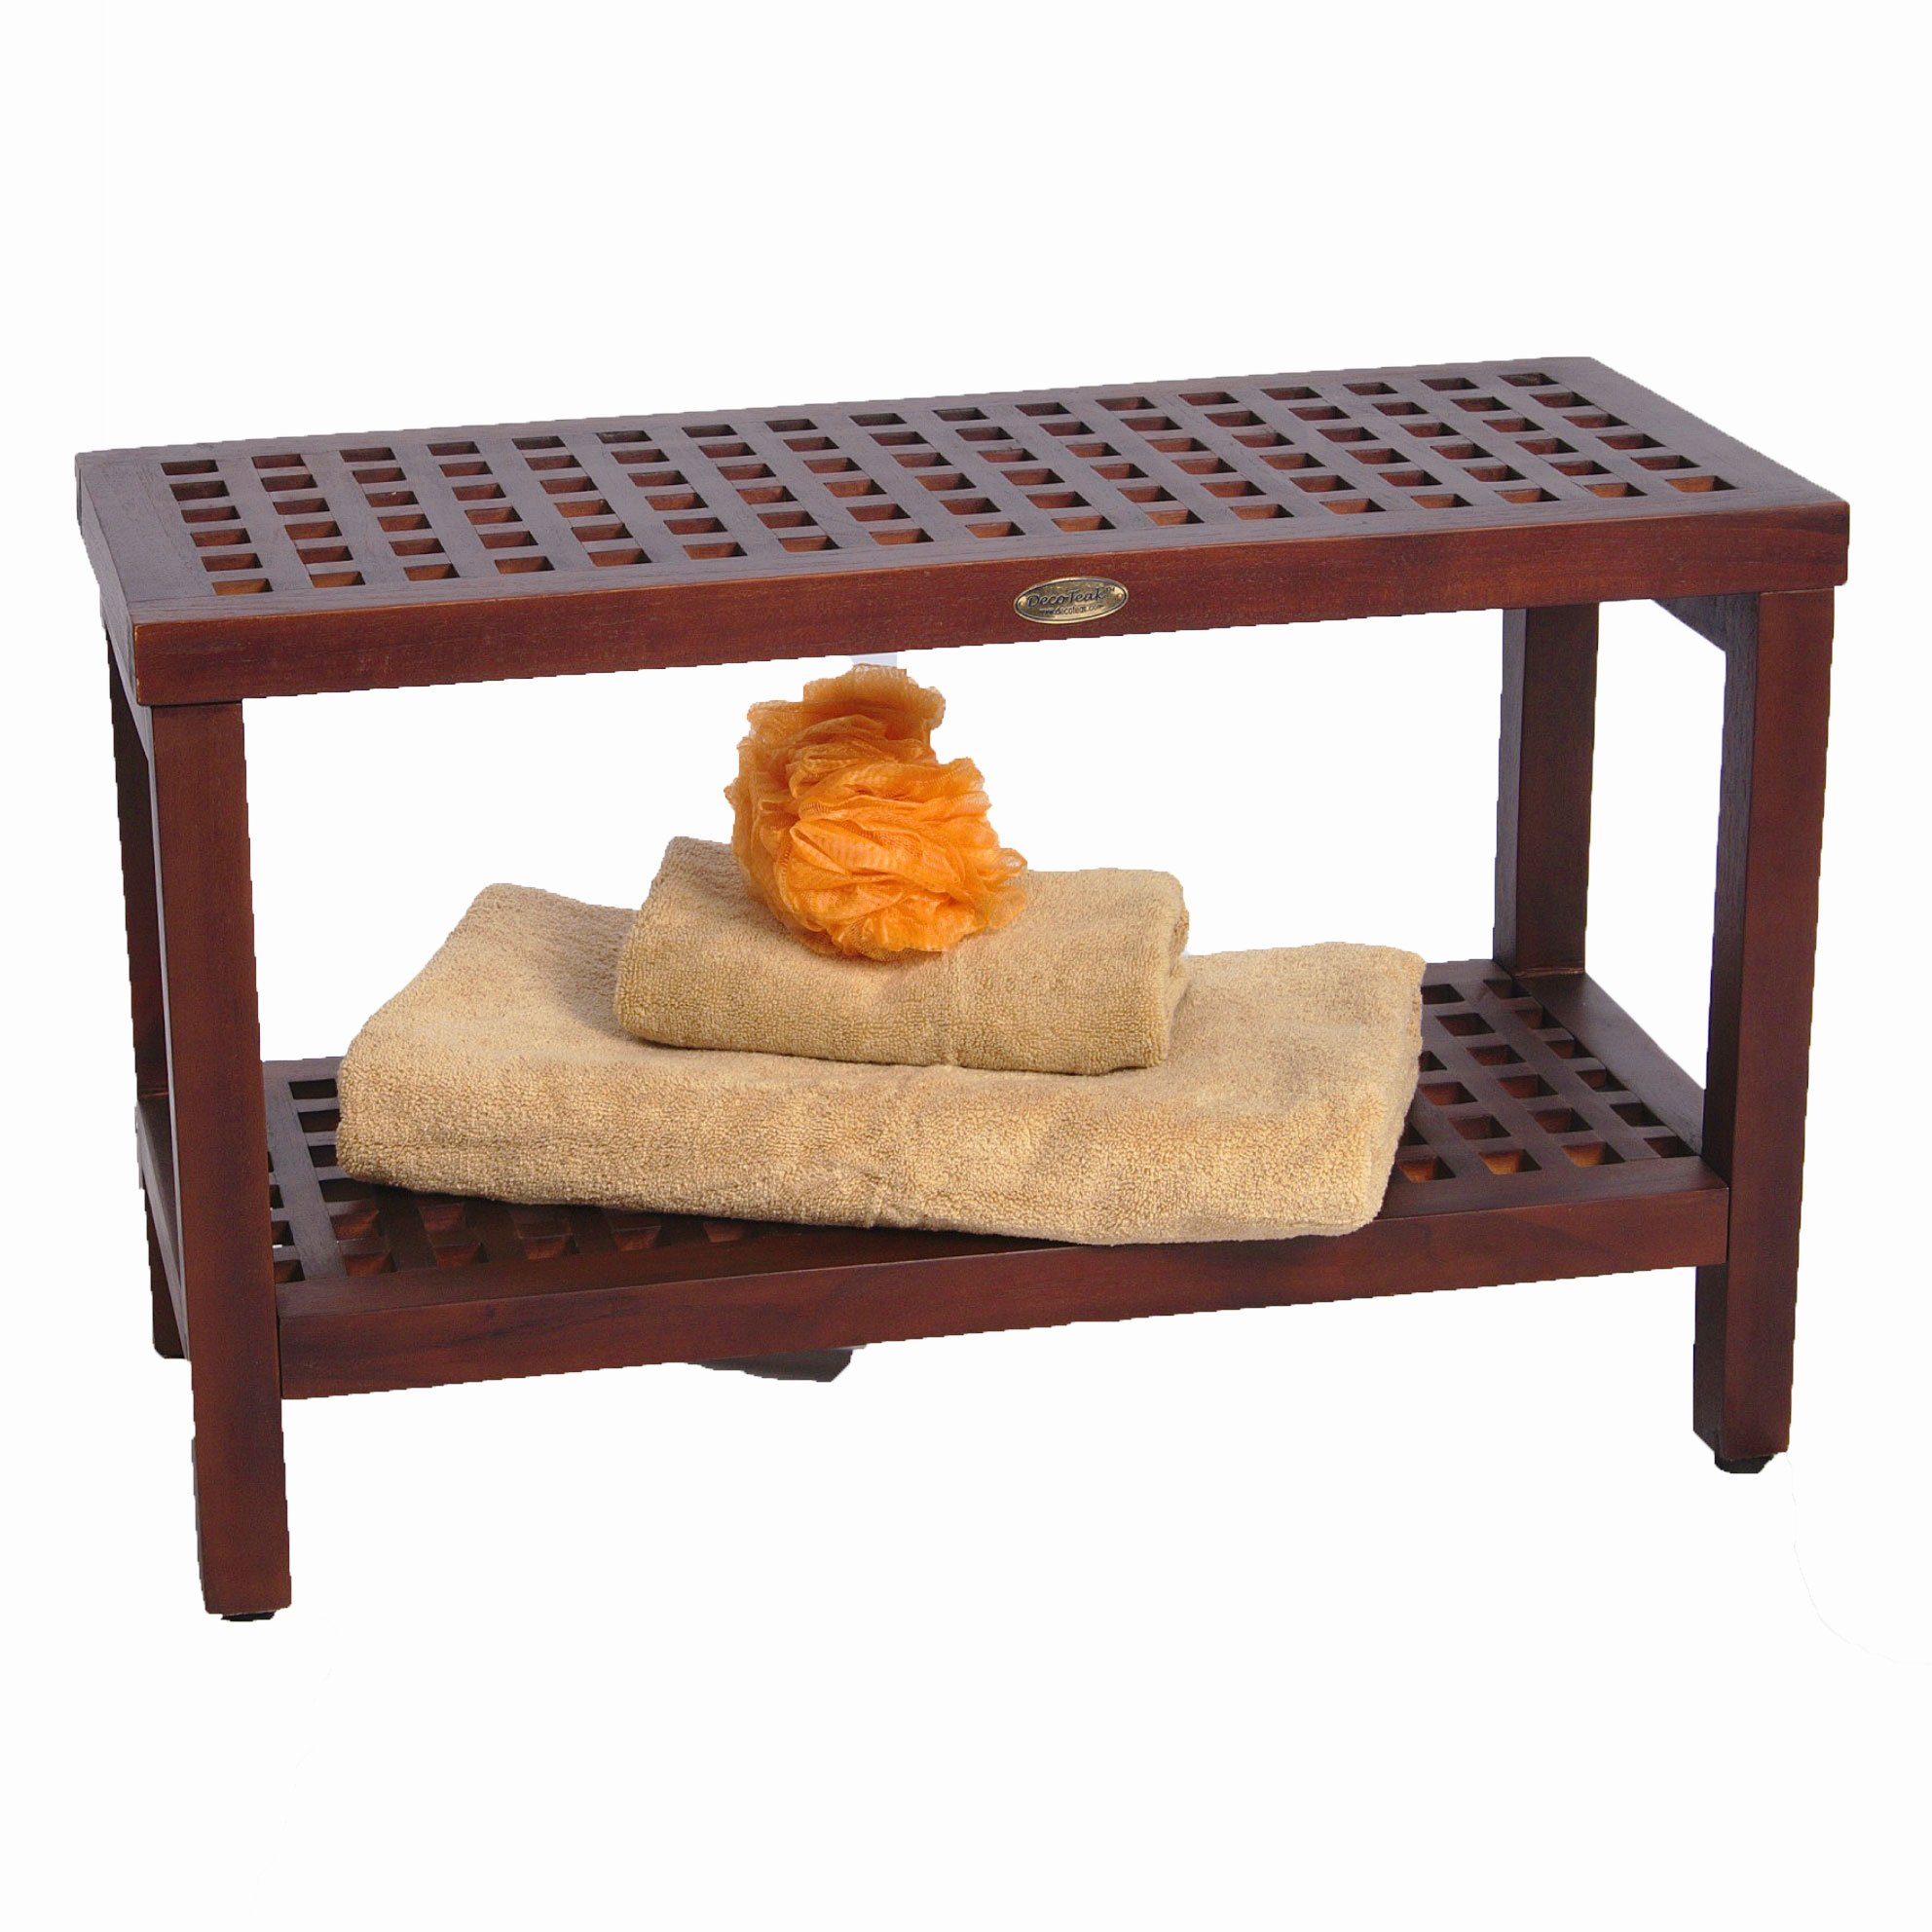 Espalier Teak Shower Bench With Shelf- 30'' Length- Contemporary Lattice Pattern